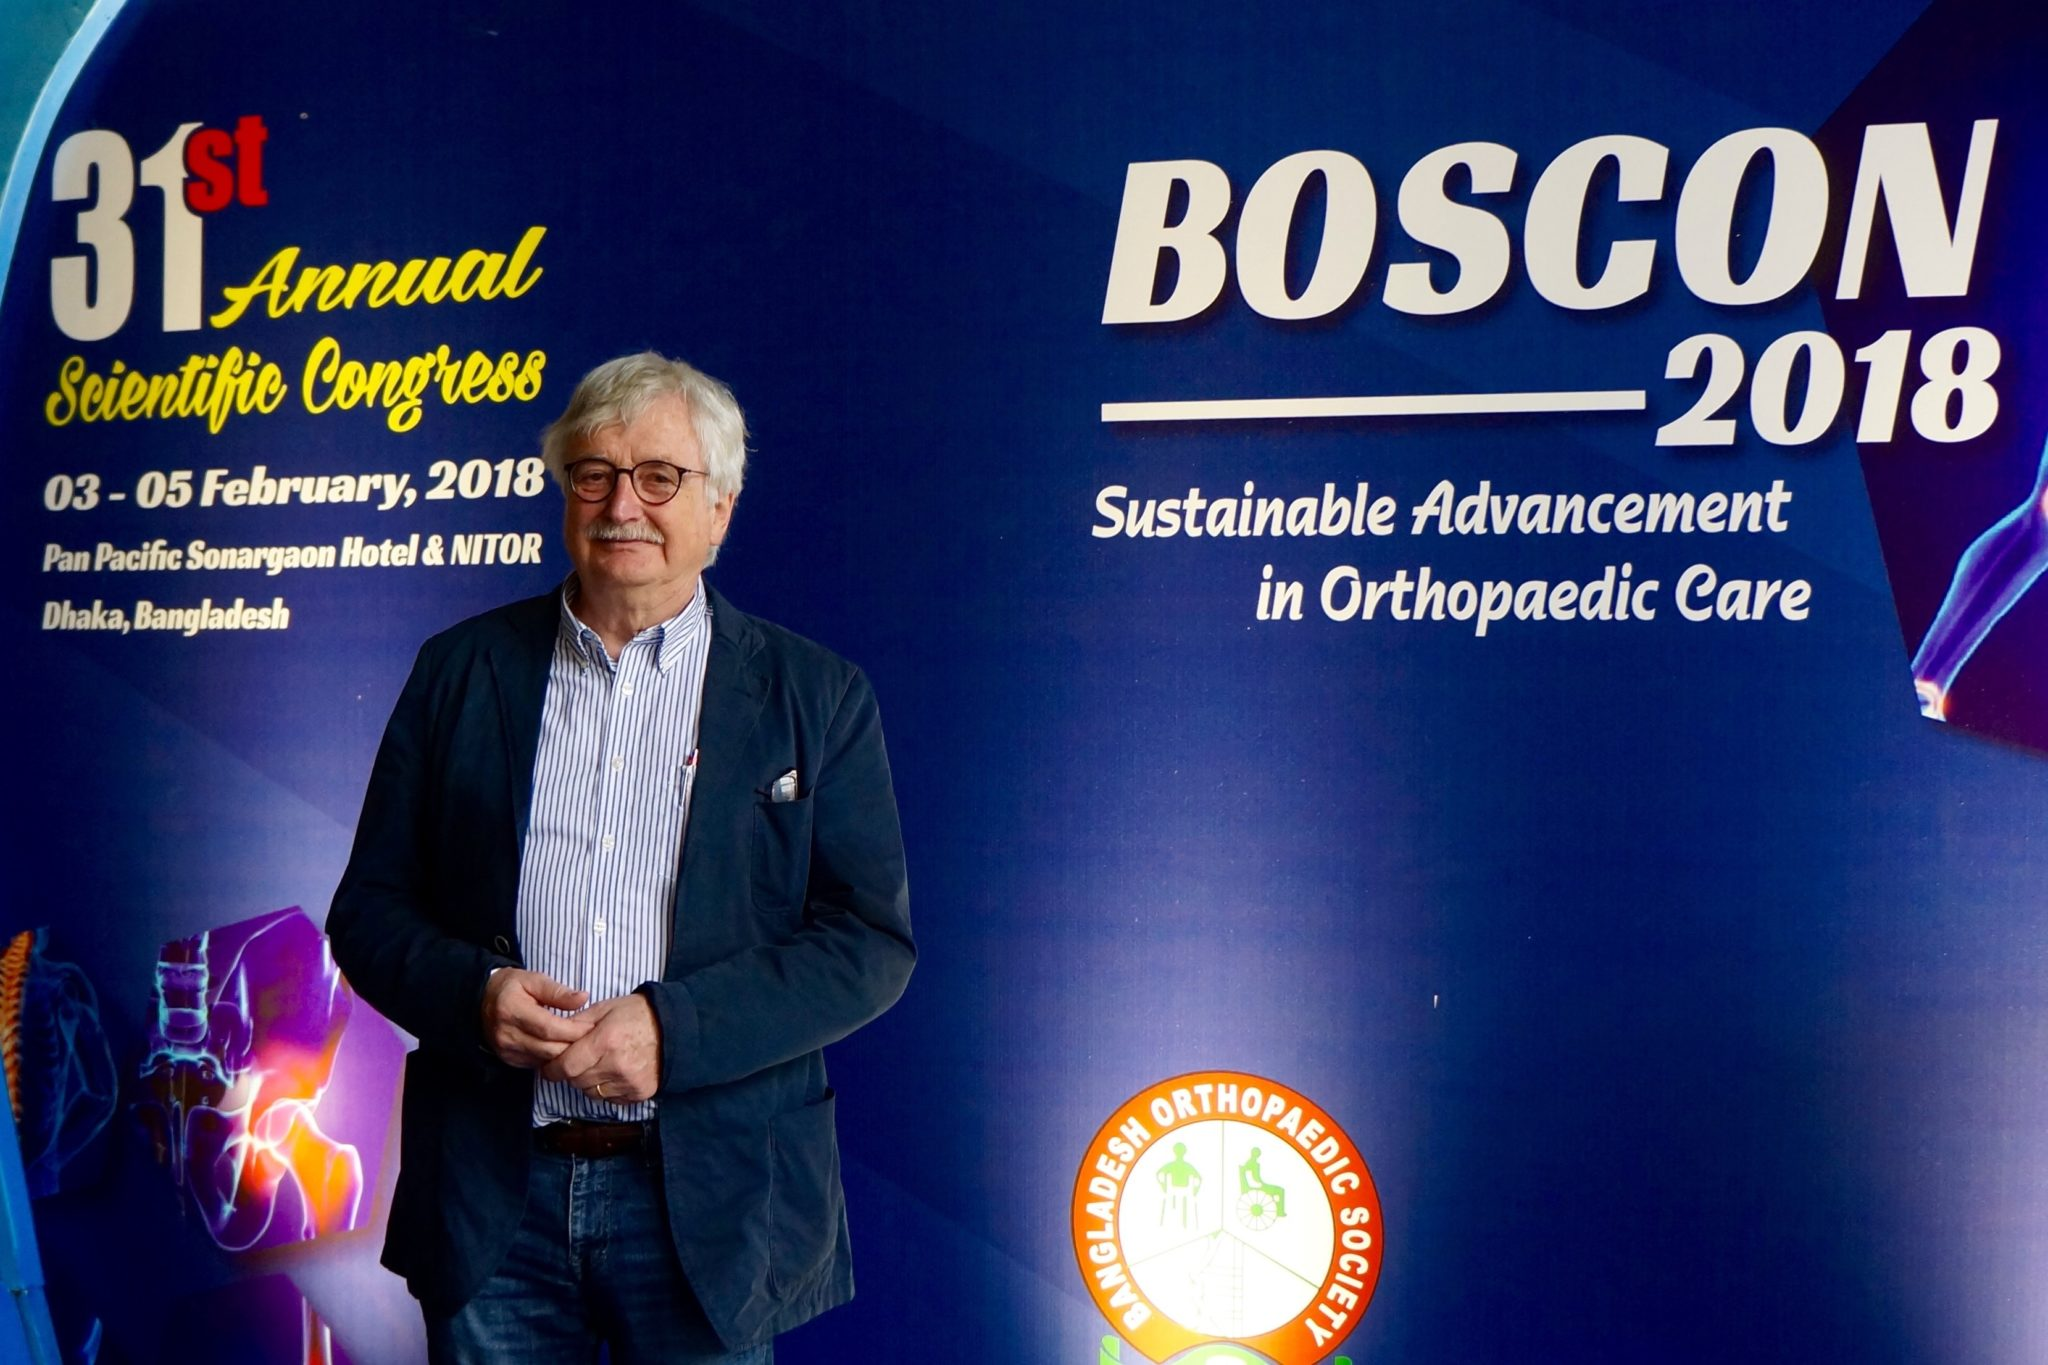 prof. Heiner Winker recounts his experience at Orthocon and Boscon